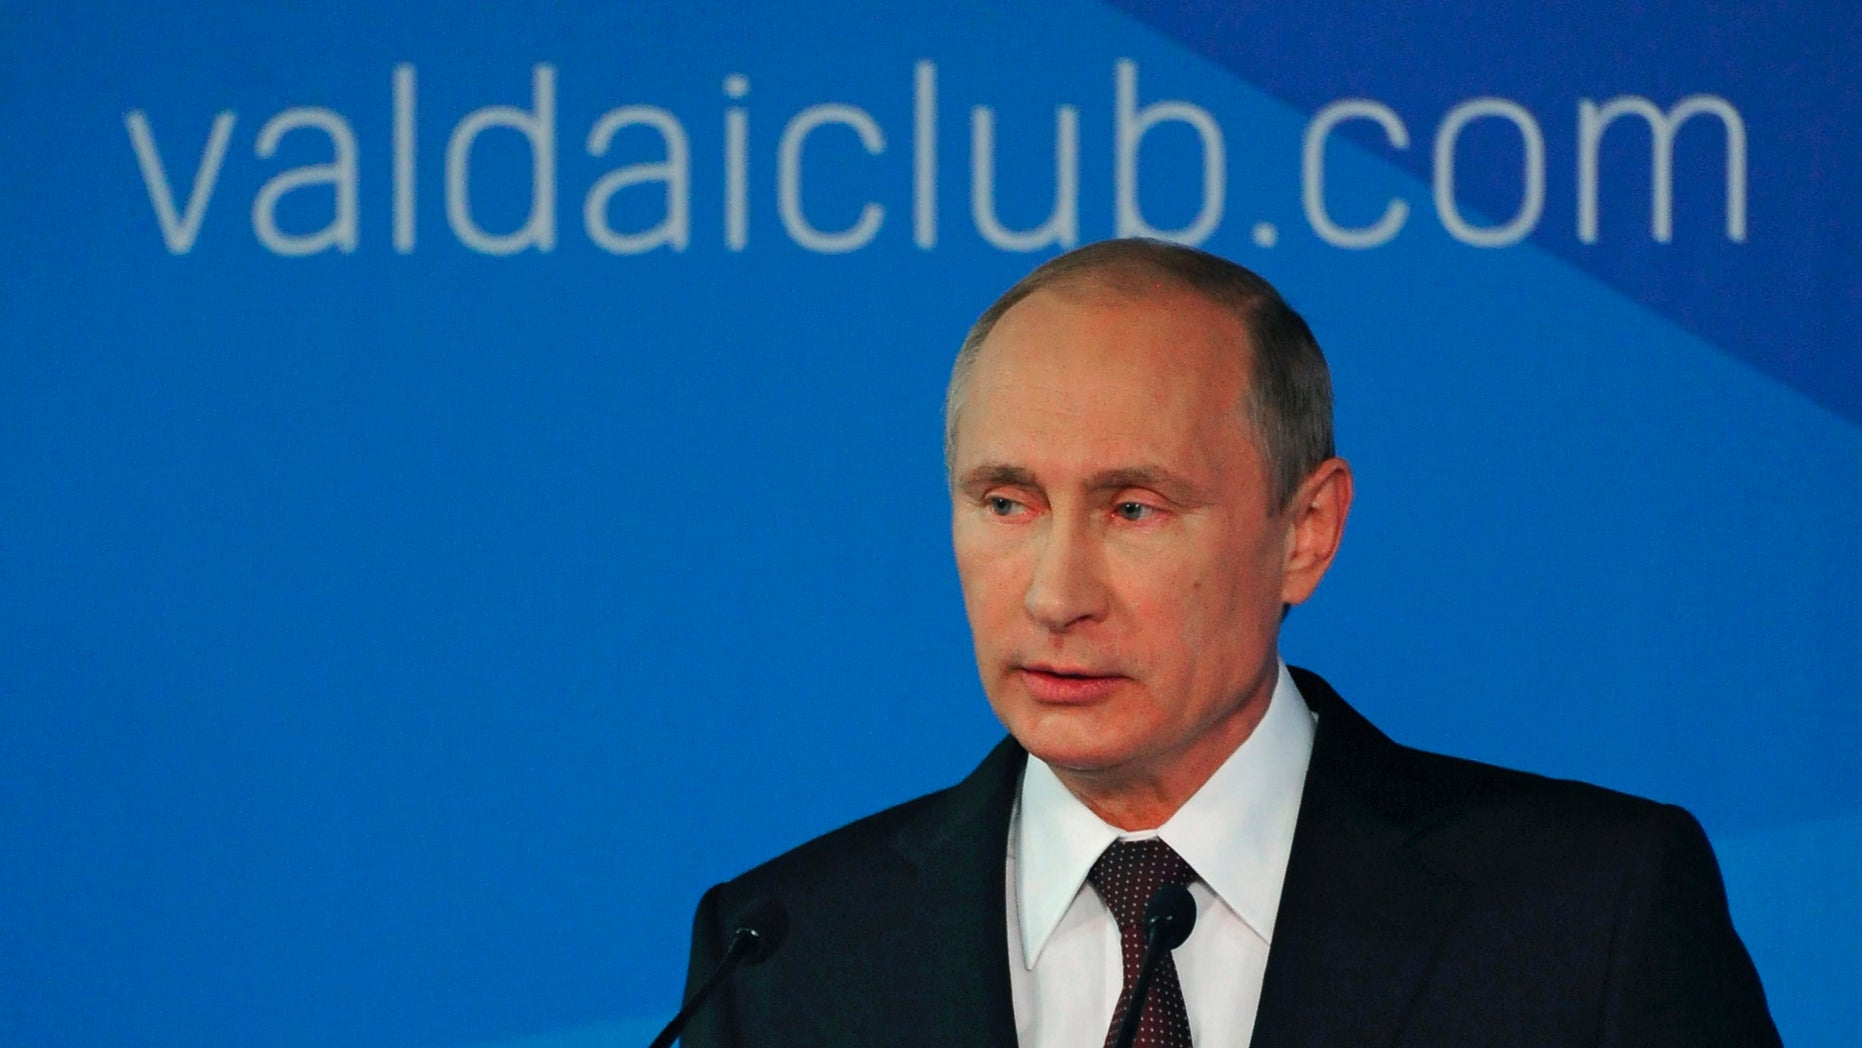 Oct. 24, 2014 - Russian President Vladimir Putin speaks to political experts at a meeting of the Valdai International Club in Sochi, Russia. Putin accused the U.S. of destabilizing the world by trying to enforce its will on other countries.